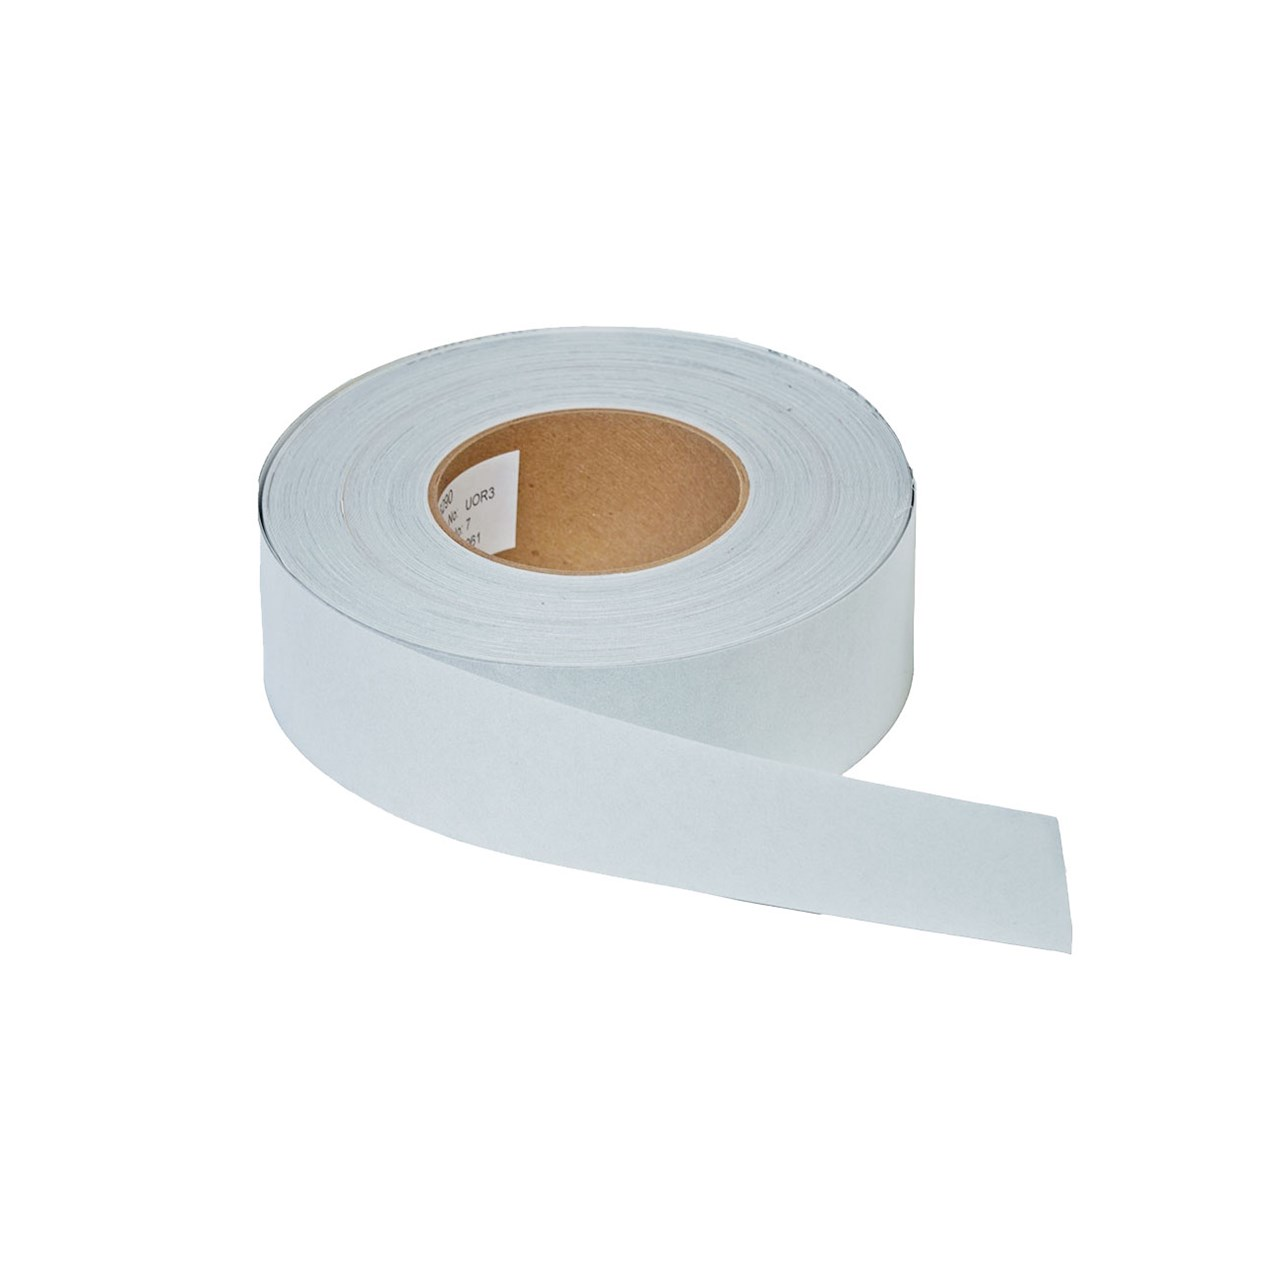 White Reflective Tape Roll For Ambutech Canes